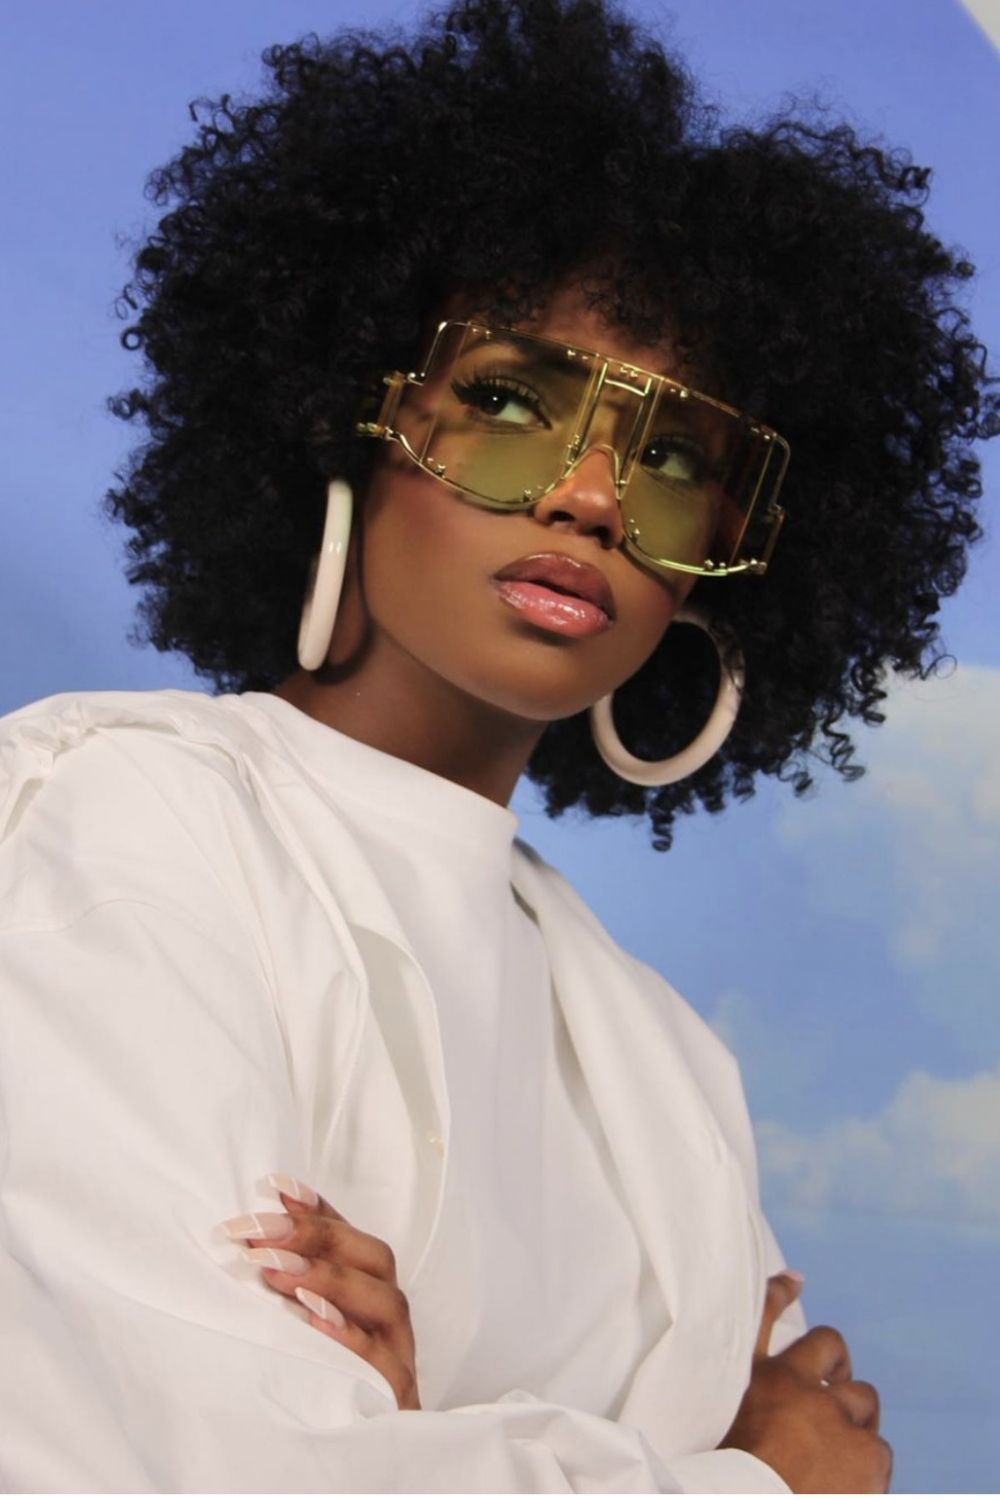 Women Luxury Retro Square Rimless Oversized Sunglasses In 2020 Black Girl Aesthetic Black Beauties Natural Hair Styles